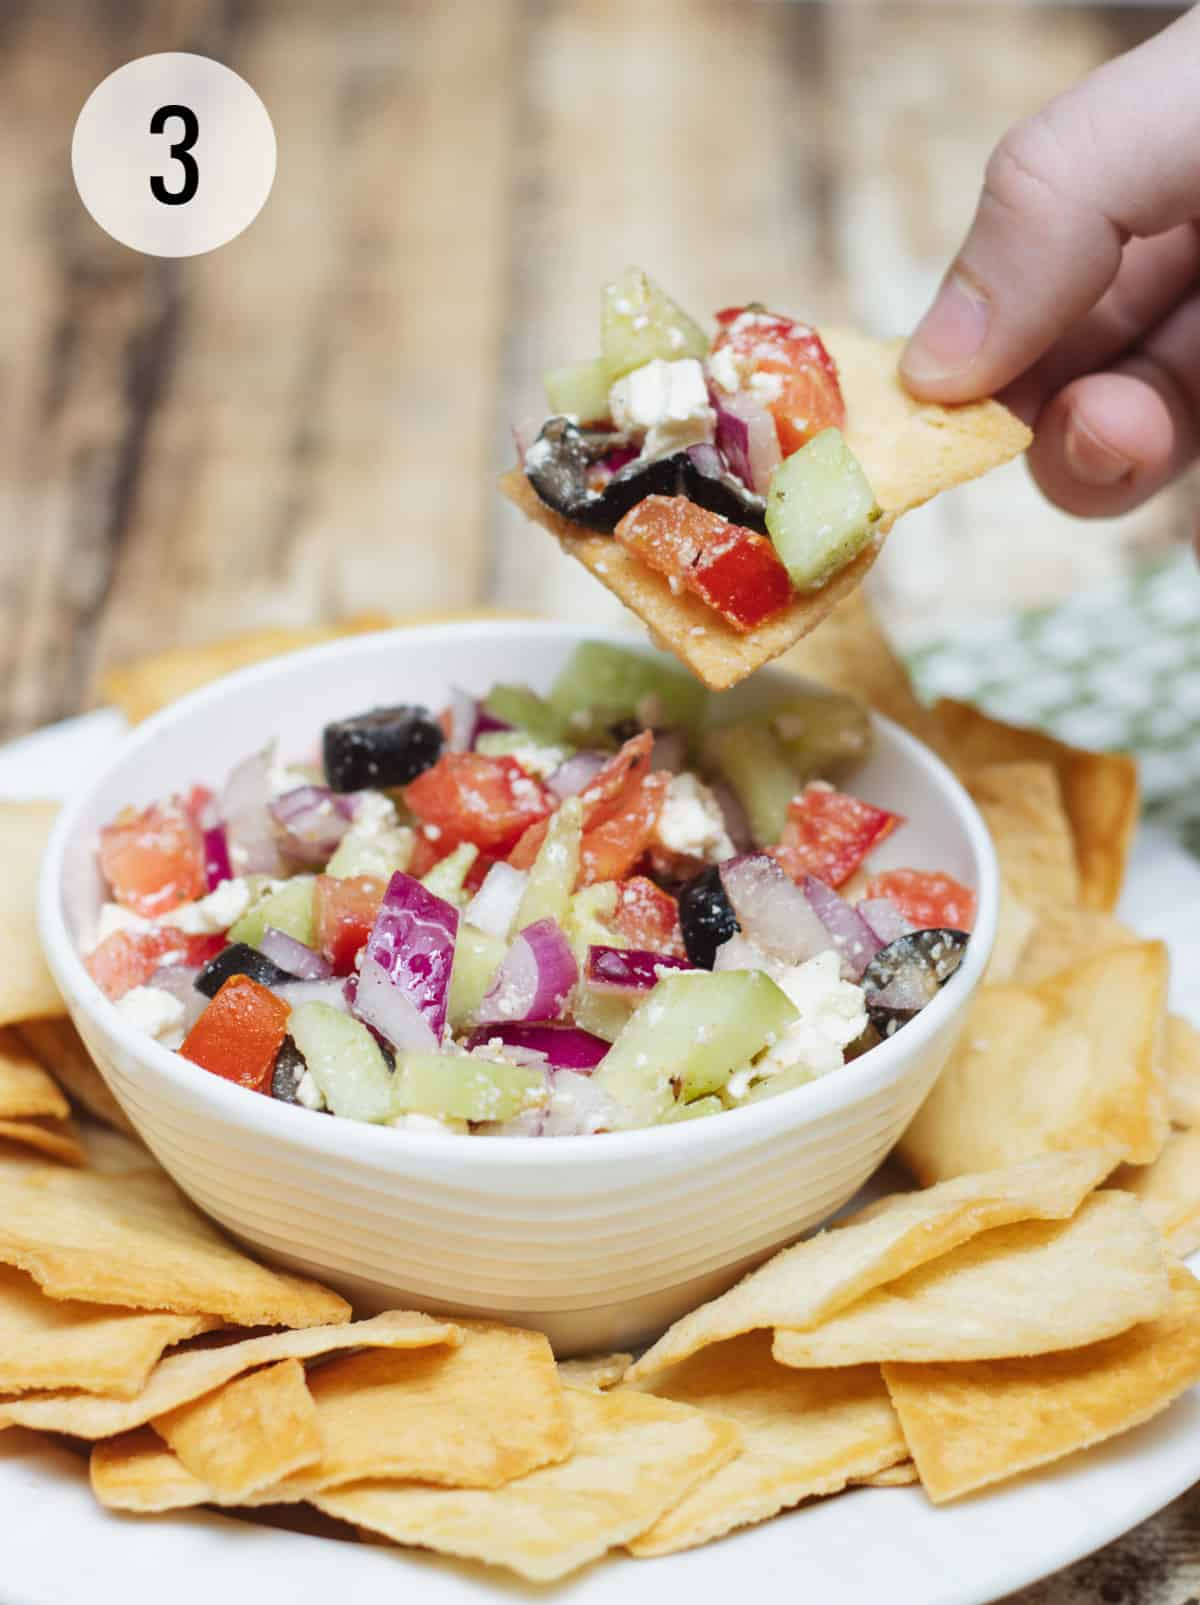 Greek salsa with tomatoes, cucumbers, black olives and feta cheese on a pita chip with white bowl of salsa and chips.